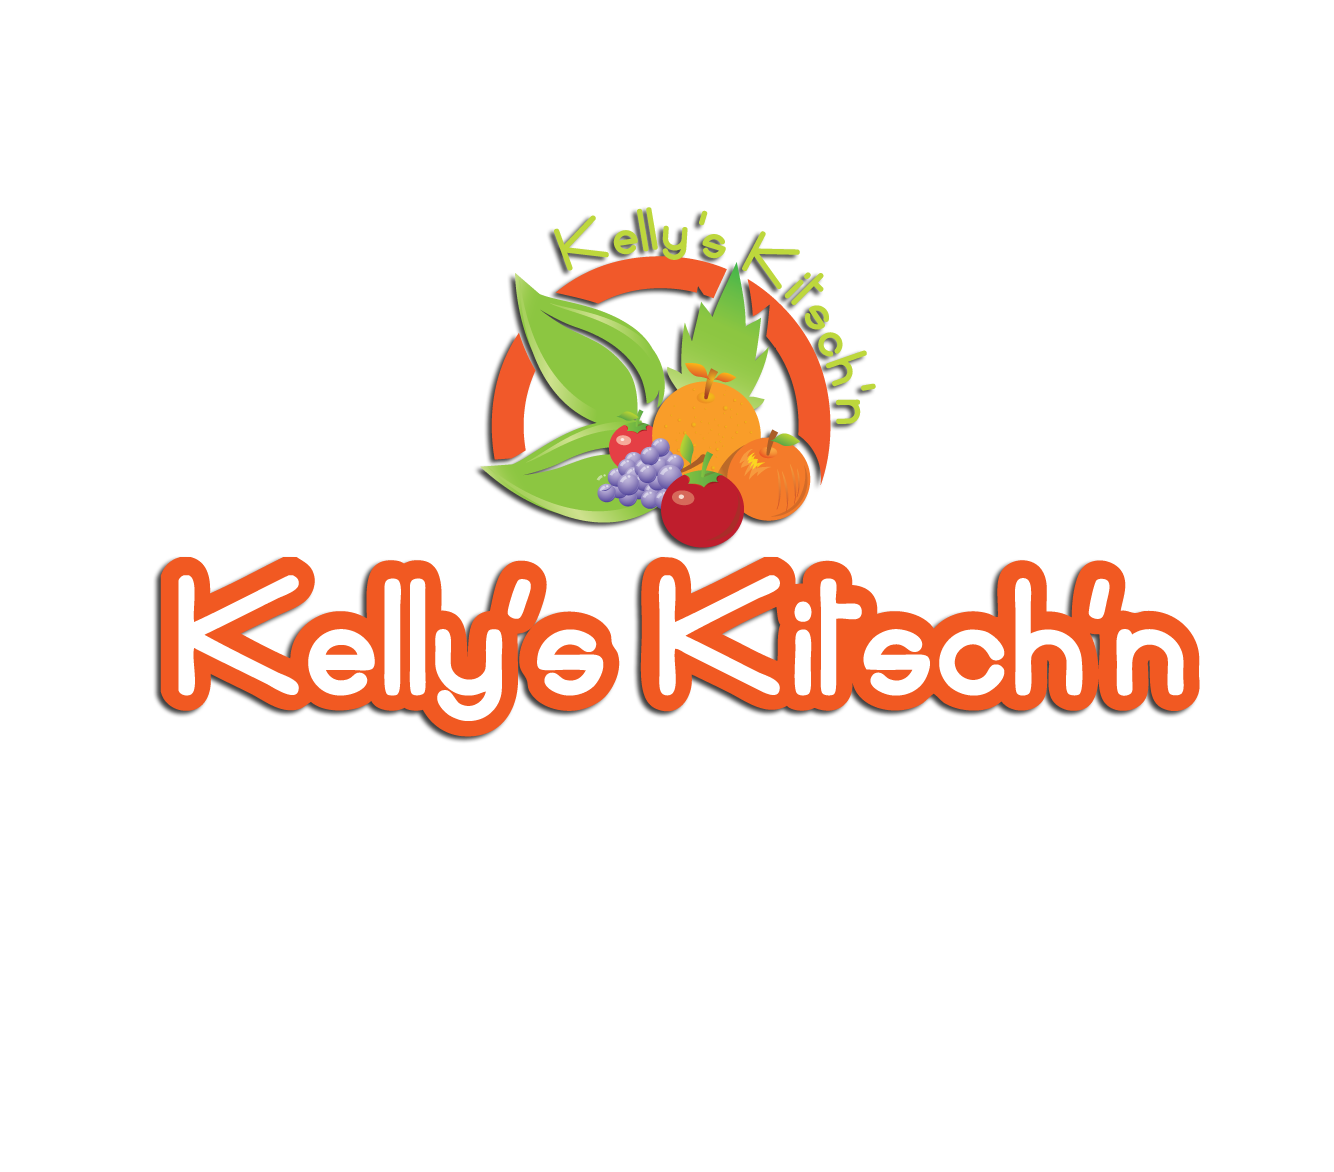 Logo Design by 354studio - Entry No. 30 in the Logo Design Contest Unique Logo Design Wanted for Kelly's Kitsch'n.